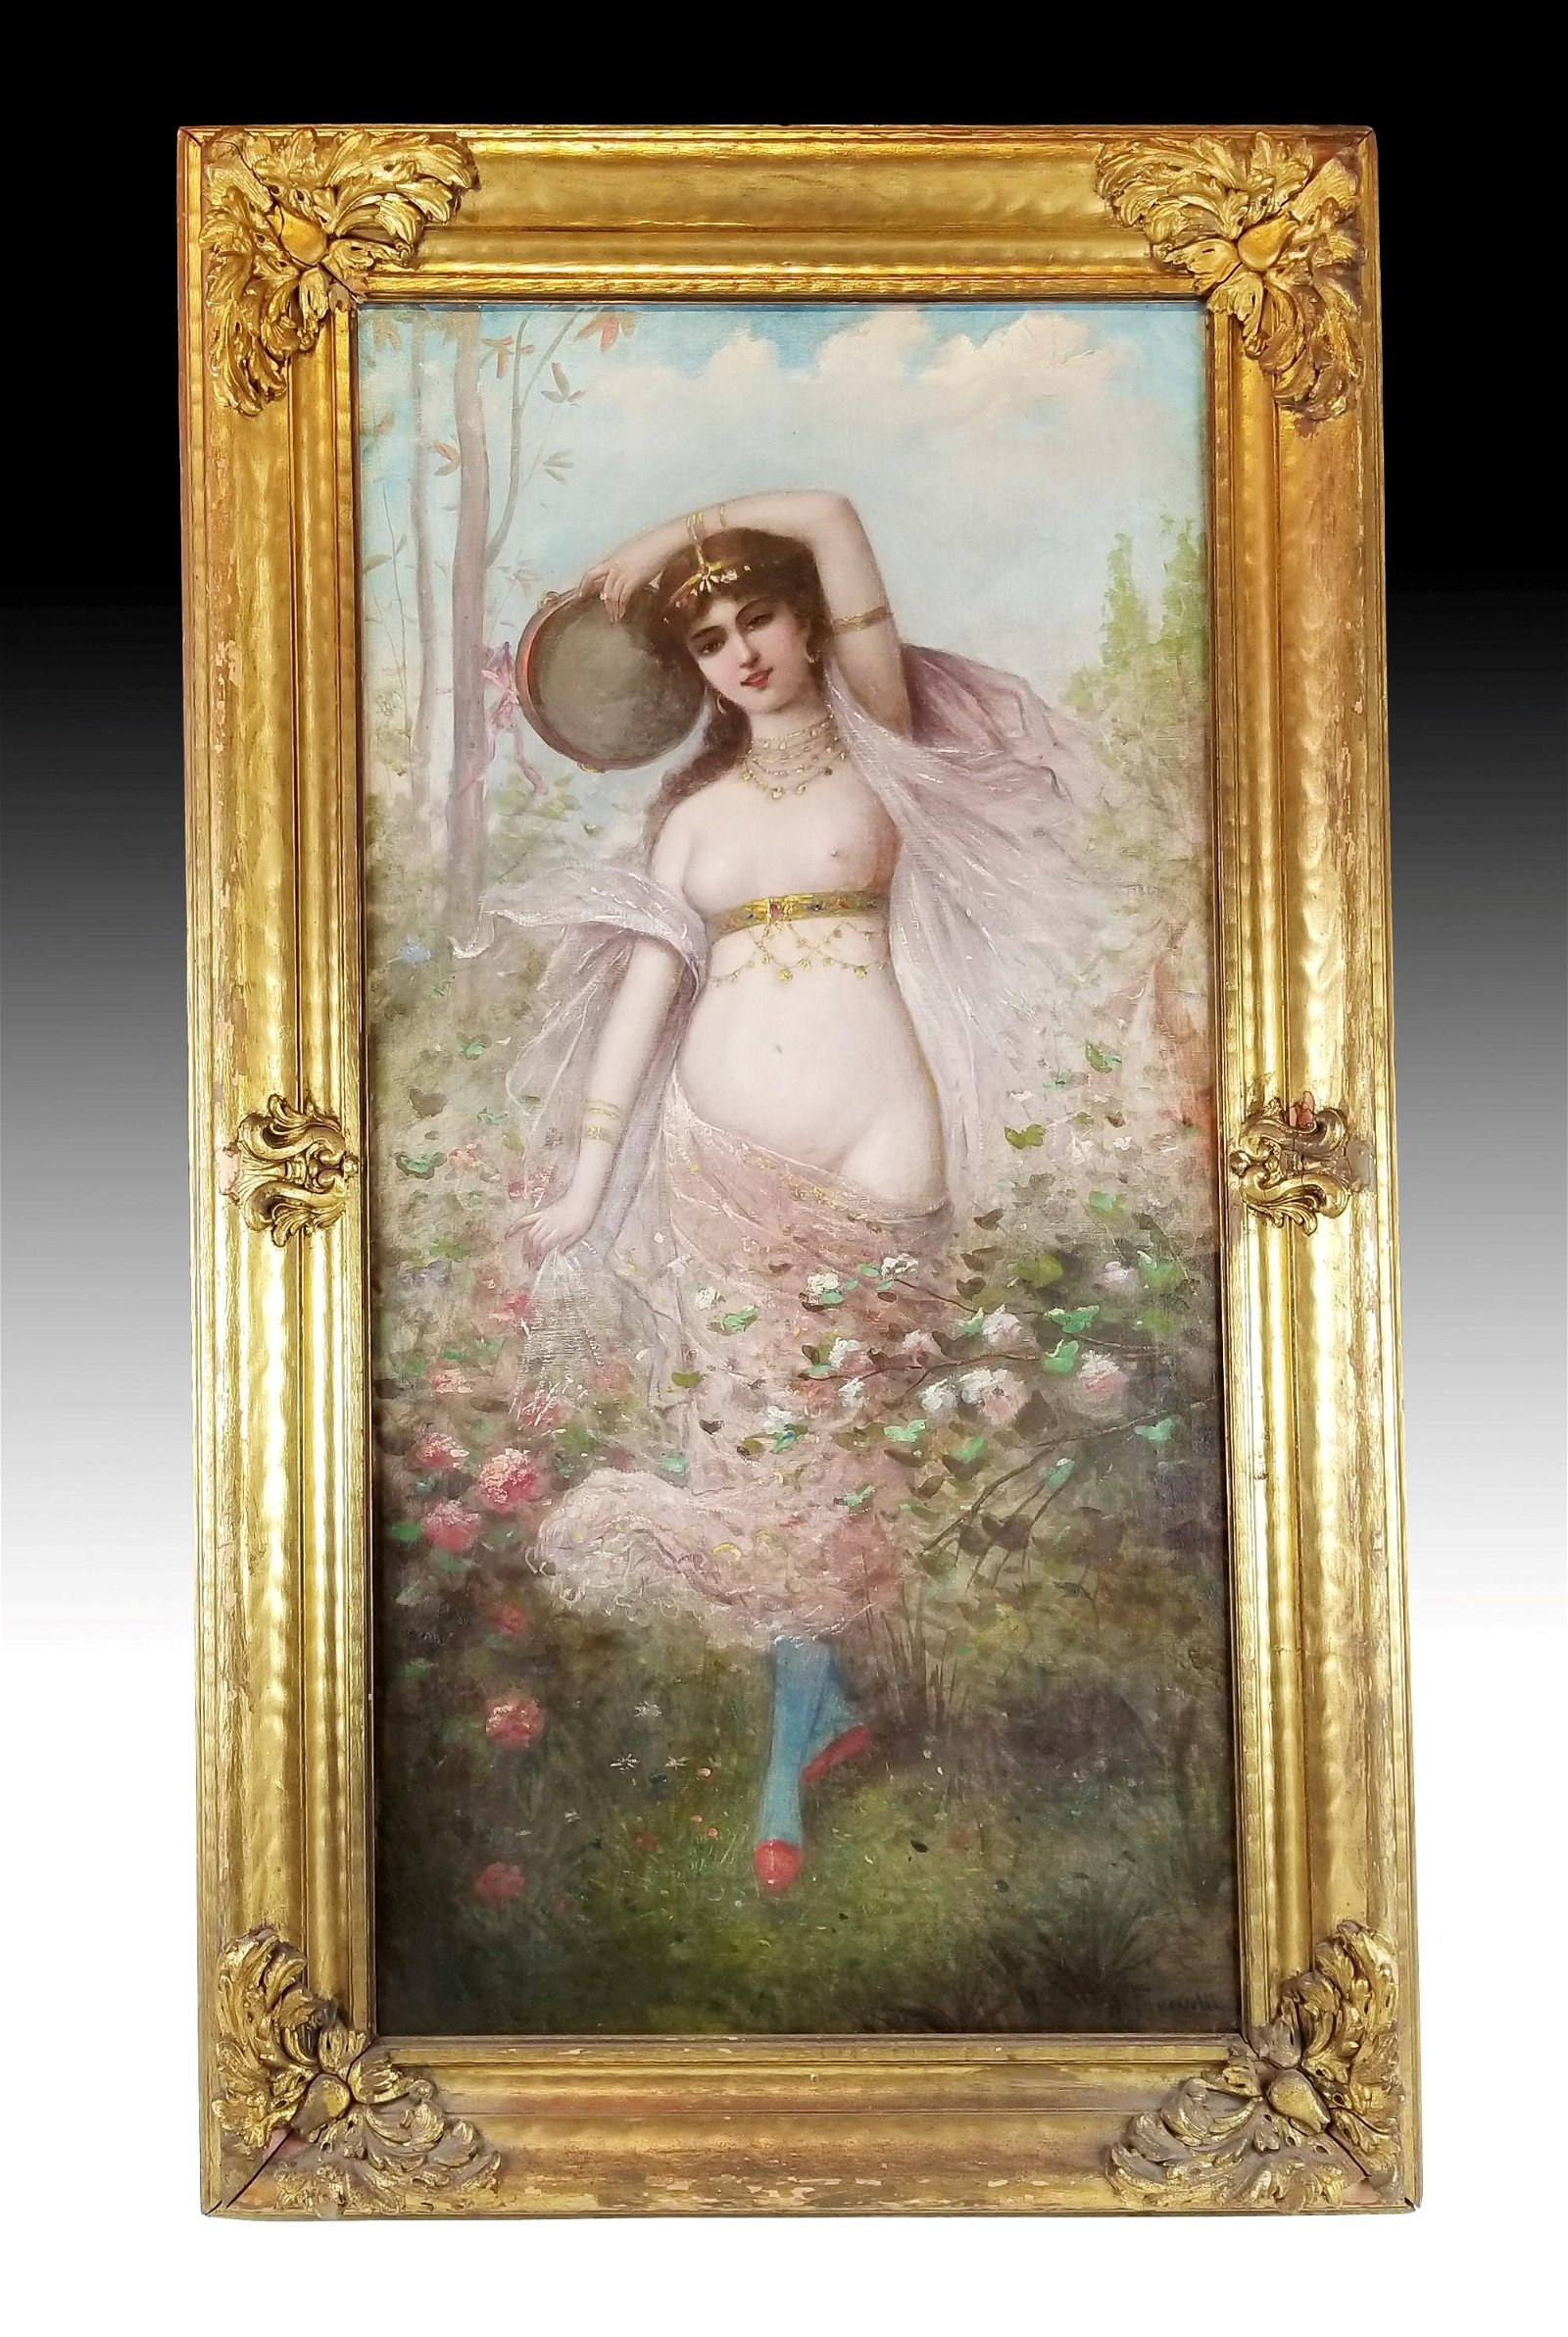 19th C. French Painting of Woman in Frame, Signed